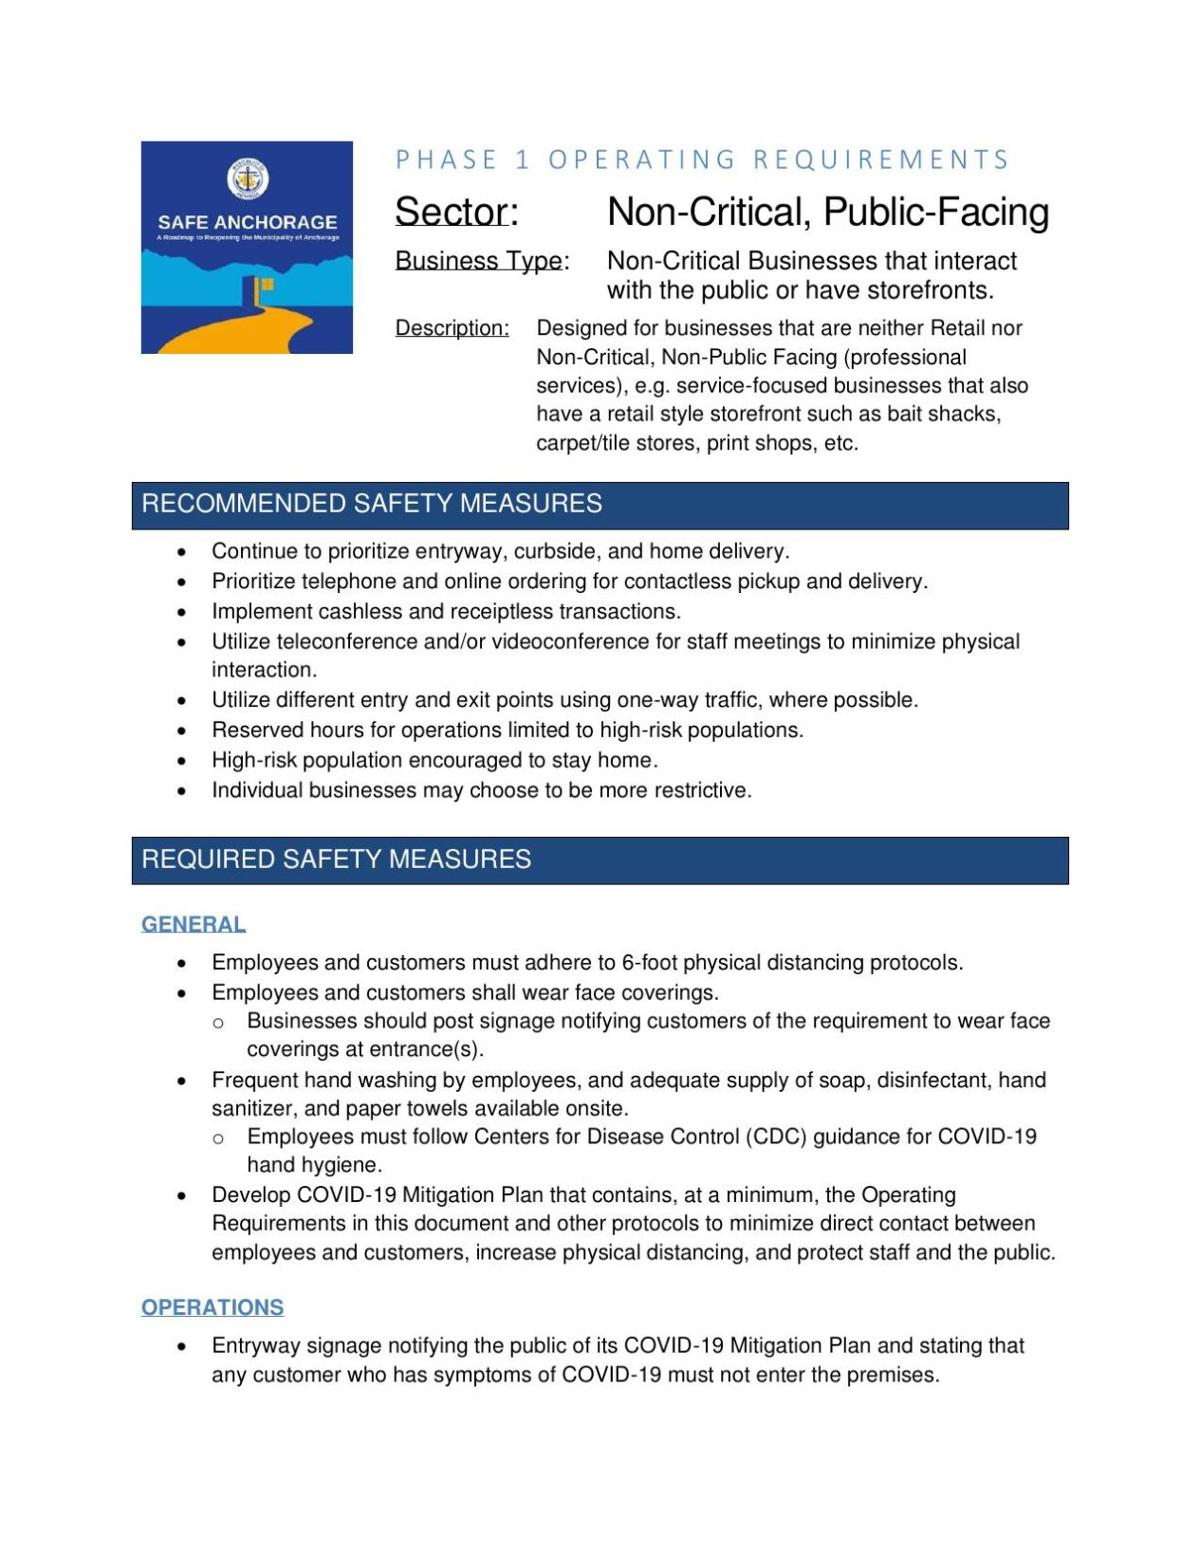 FINAL Operating Criteria - Non-Critical.pdf